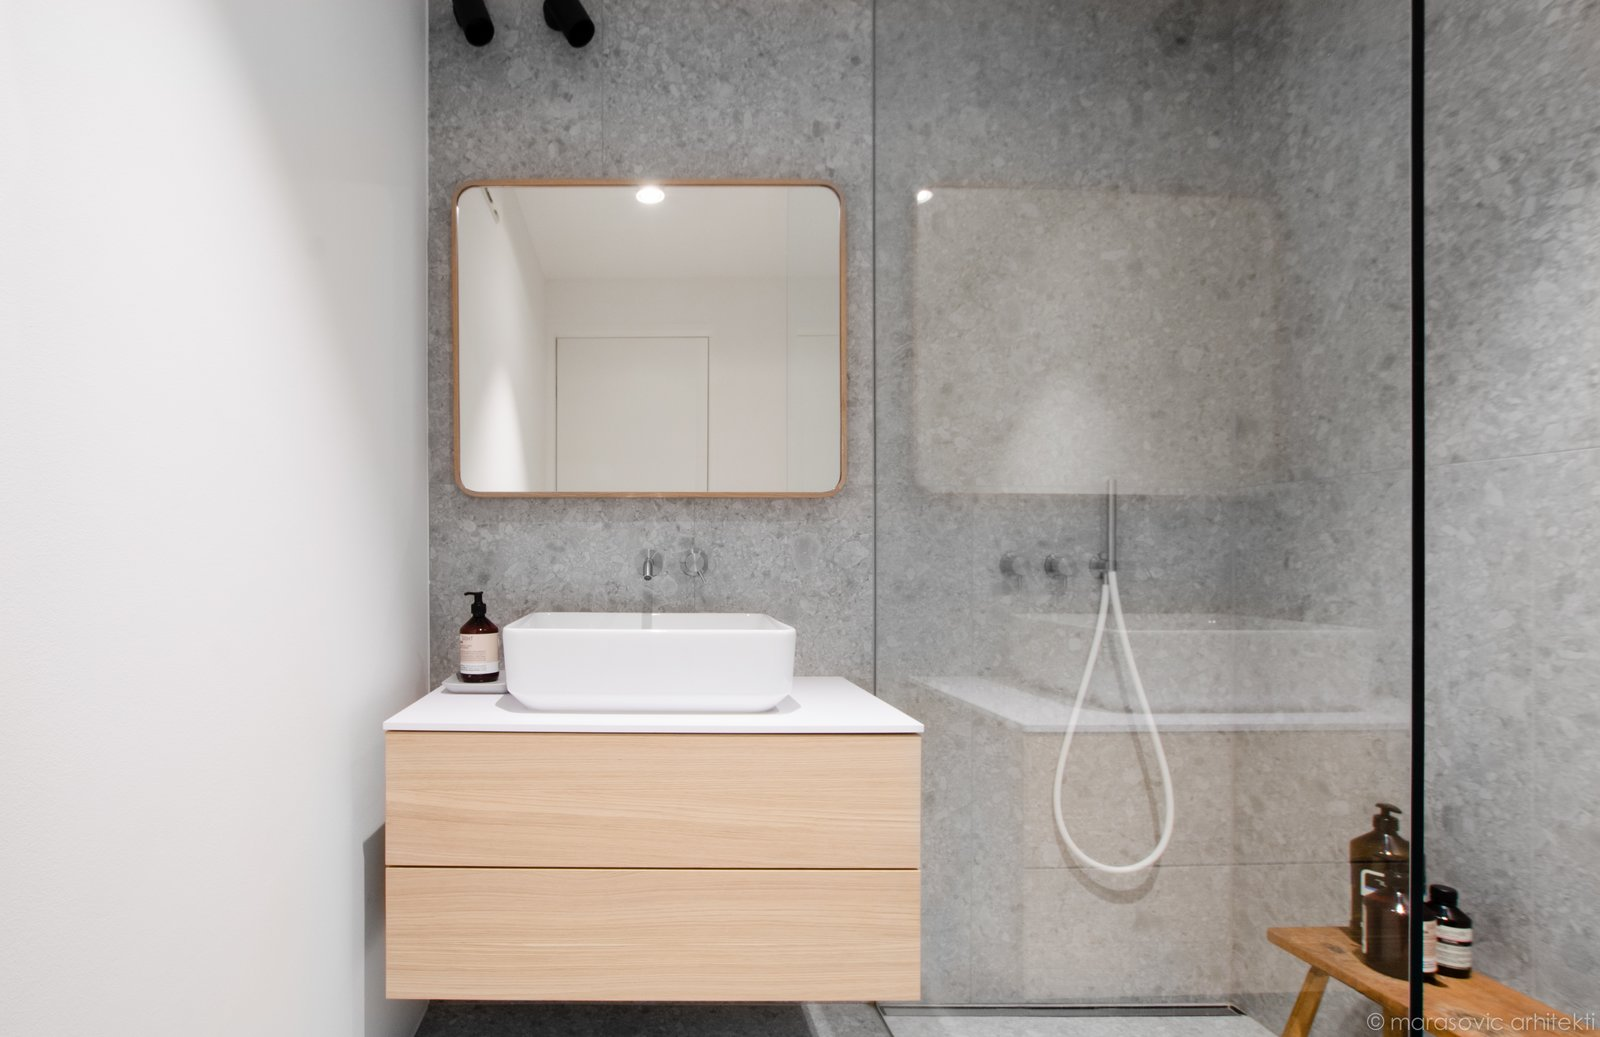 Bath Room, Wall Lighting, Pedestal Sink, Open Shower, Undermount Tub, Laminate Counter, Ceramic Tile Floor, and Terrazzo Floor  Best Photos from Apartment M8